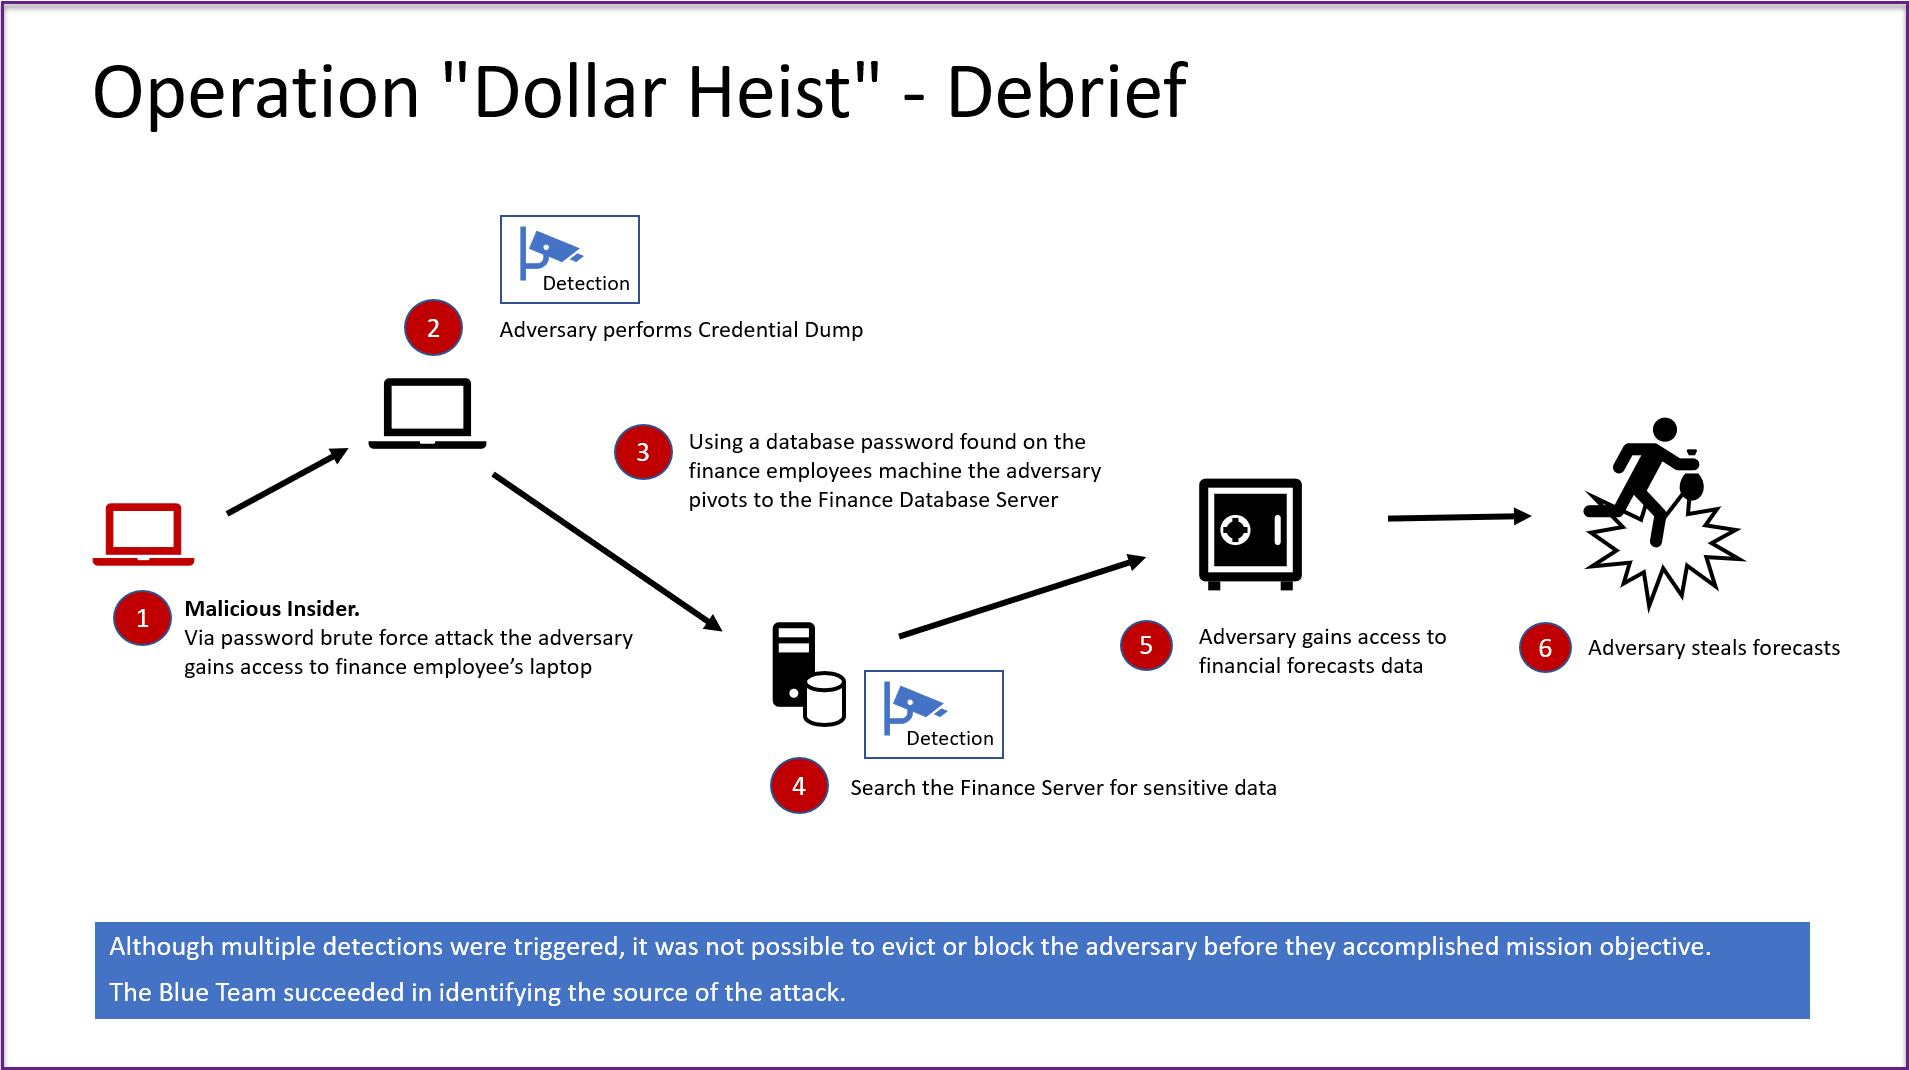 Operation Dollar Heist - Debrief